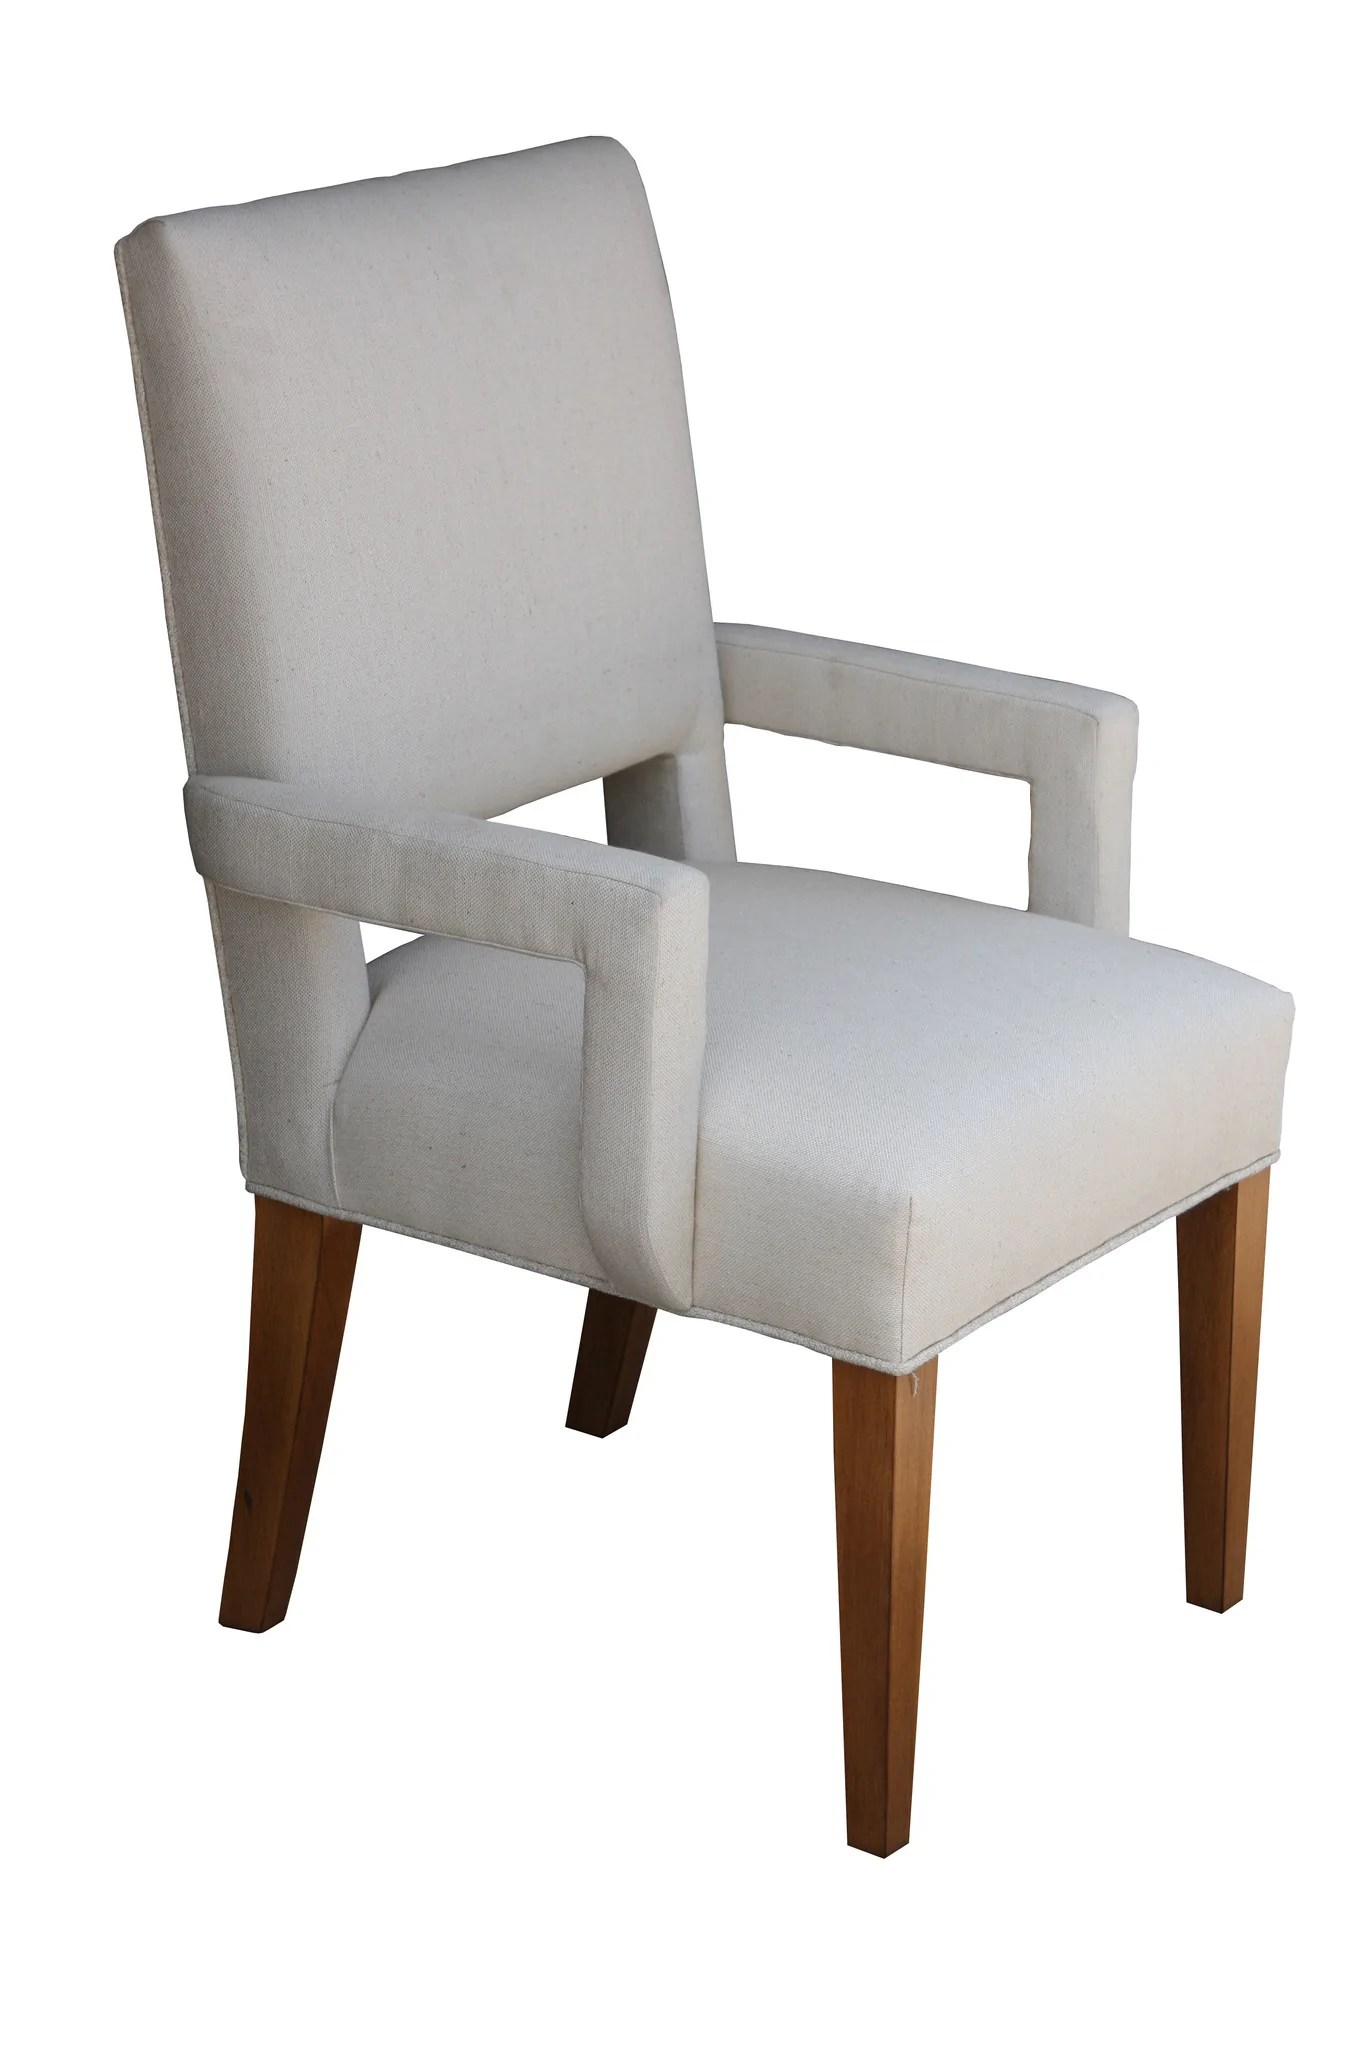 Essex Dining Room Arm Chair Mortise Tenon